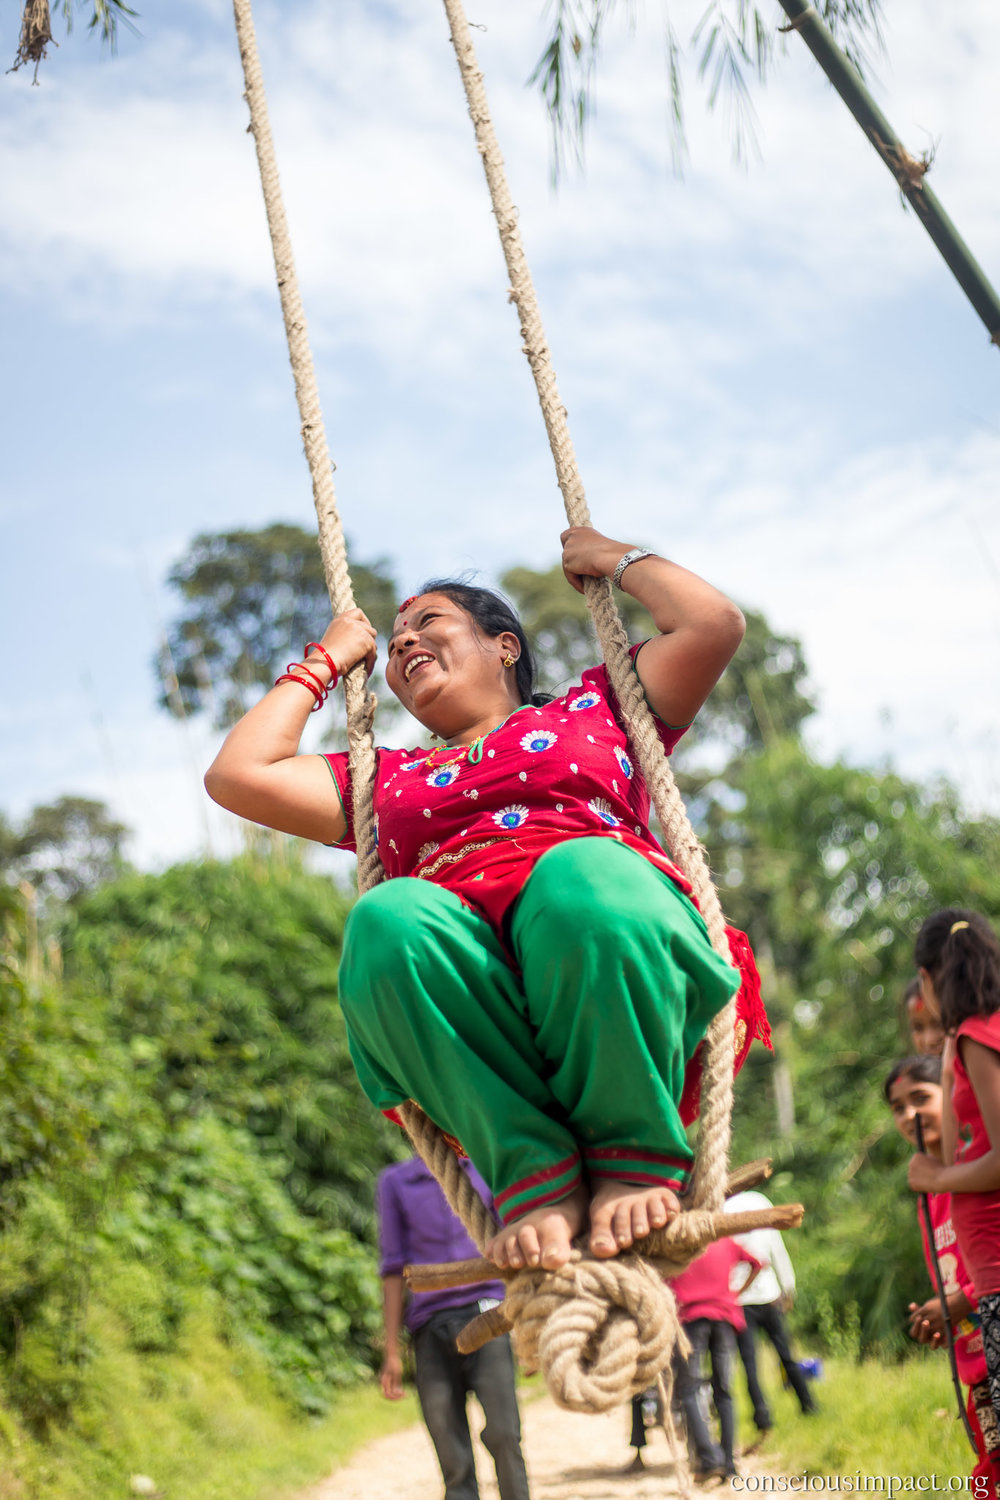 Bamboo swings are built throughout villages in Nepal, and they're not just for children! Swinging during Dashain is meant to lift spirits and rejuvenate energy.